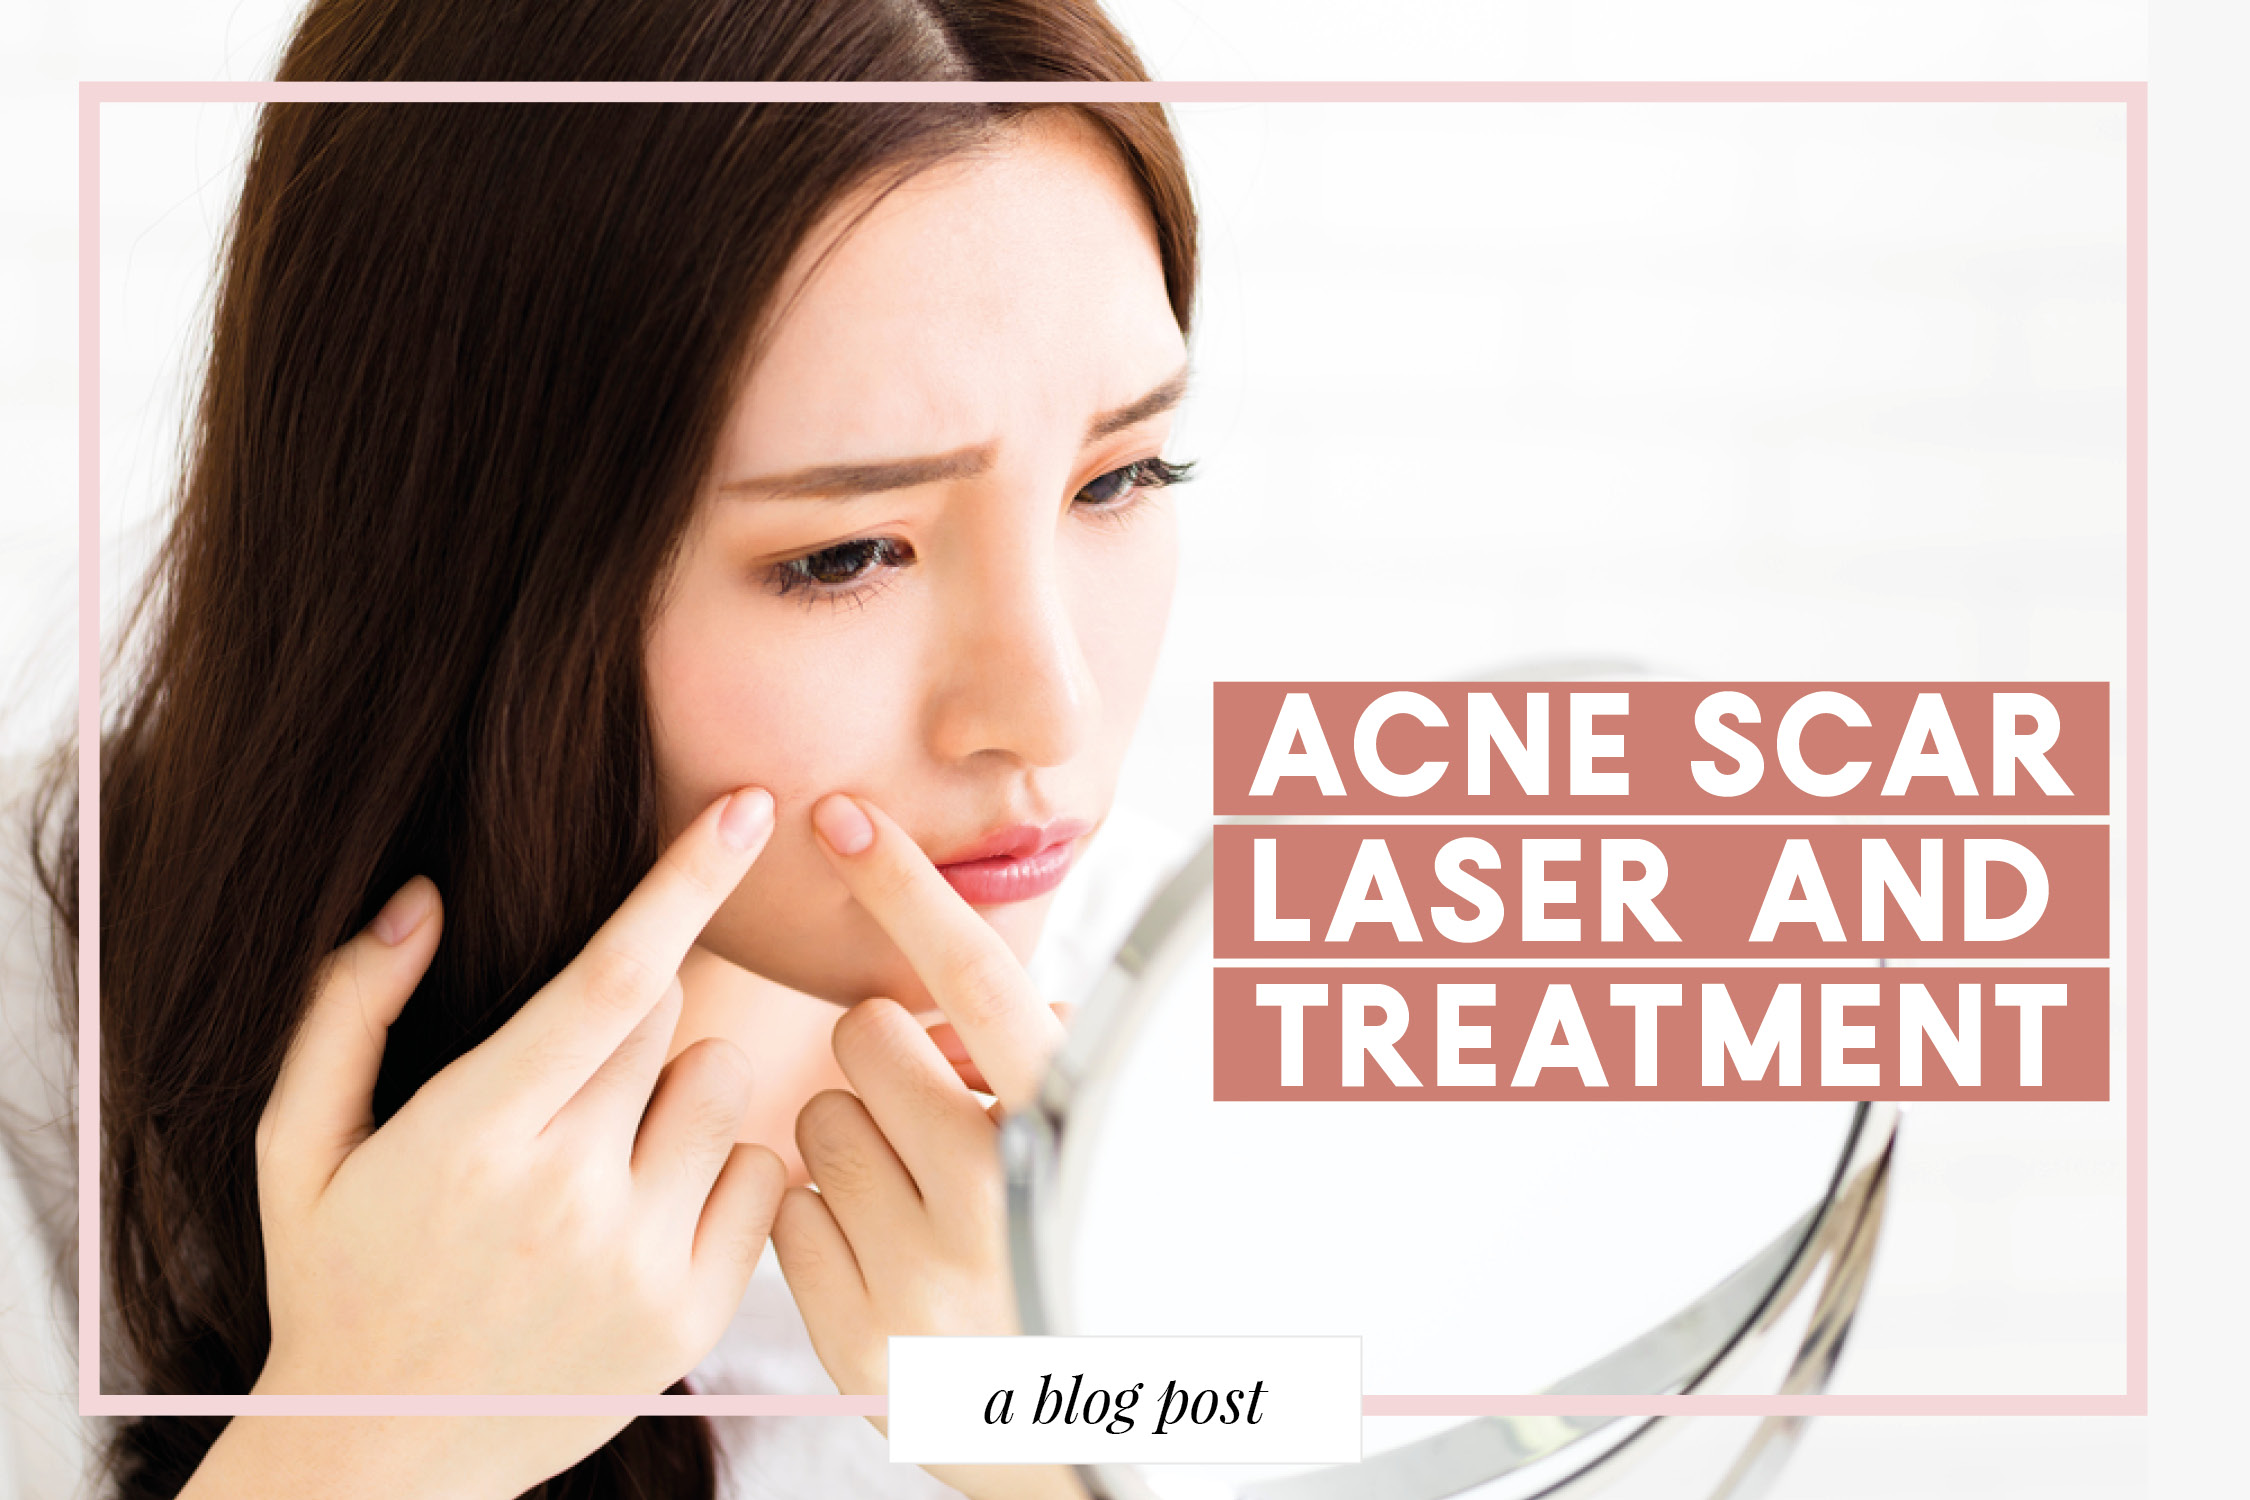 Acne Scars Laser and Treatment in Singapore – Lux Medical Aesthetic Clinic